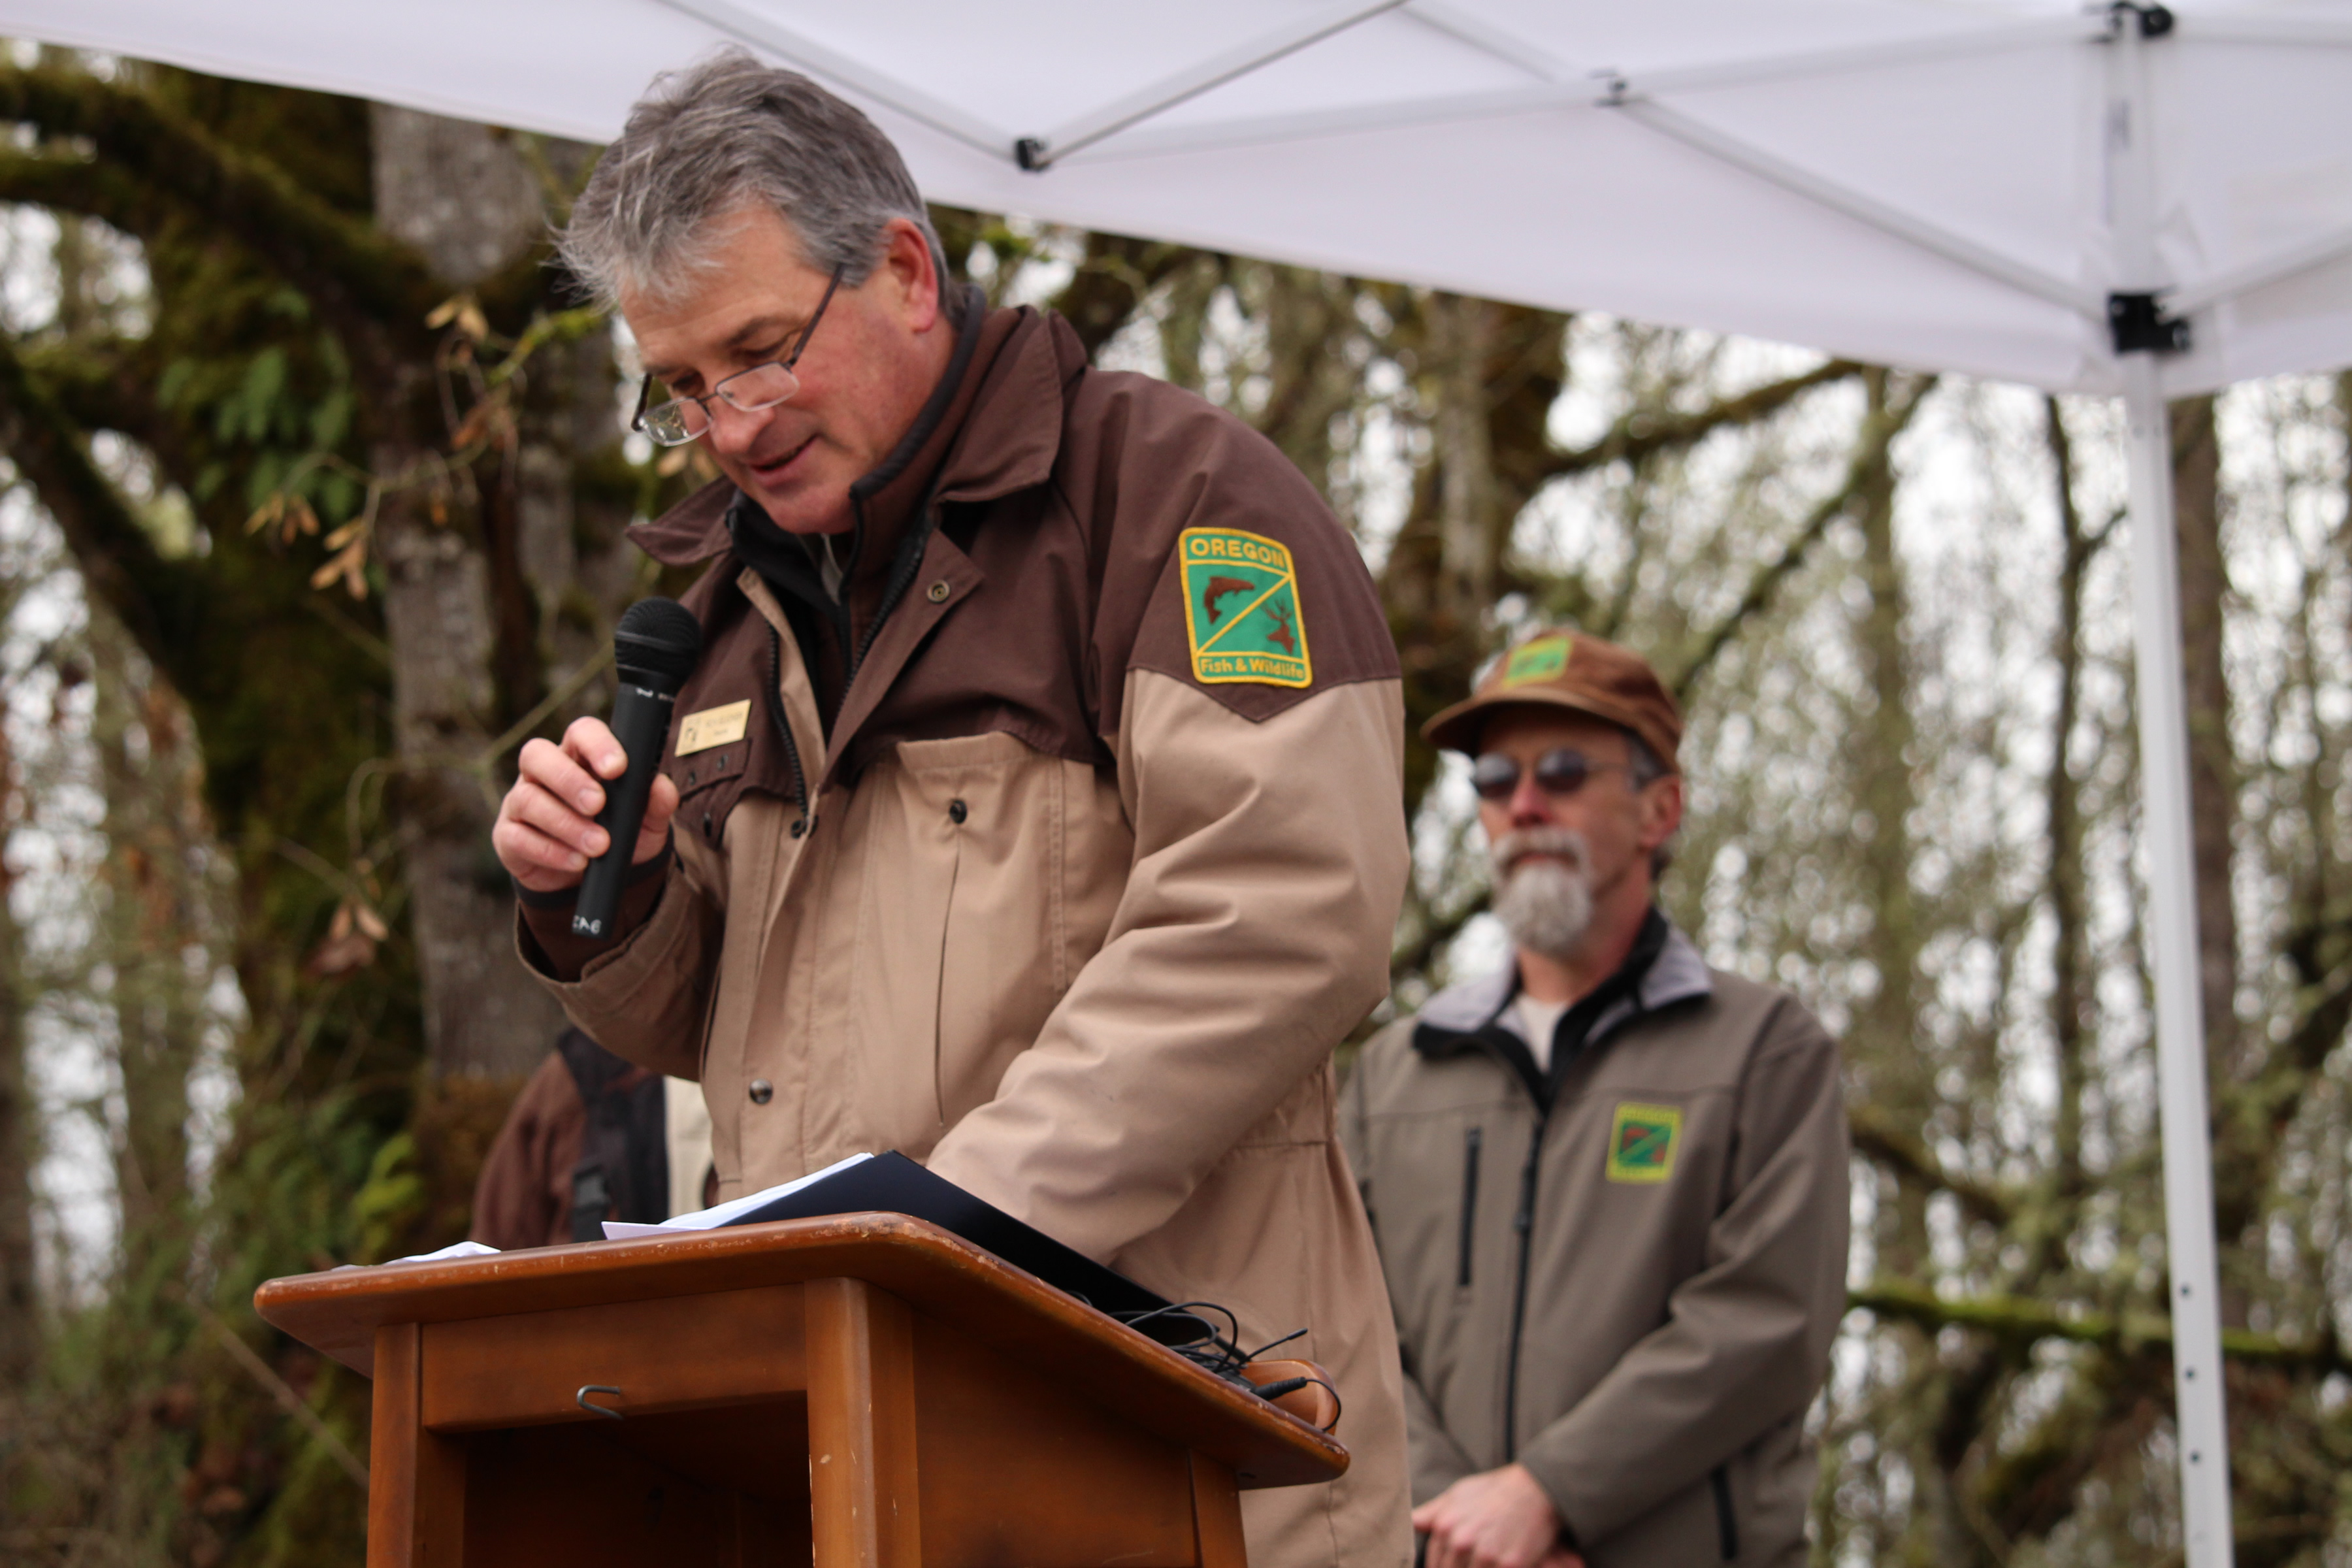 Roy elicker oregon department of fish and wildlife for Oregon fish and wildlife